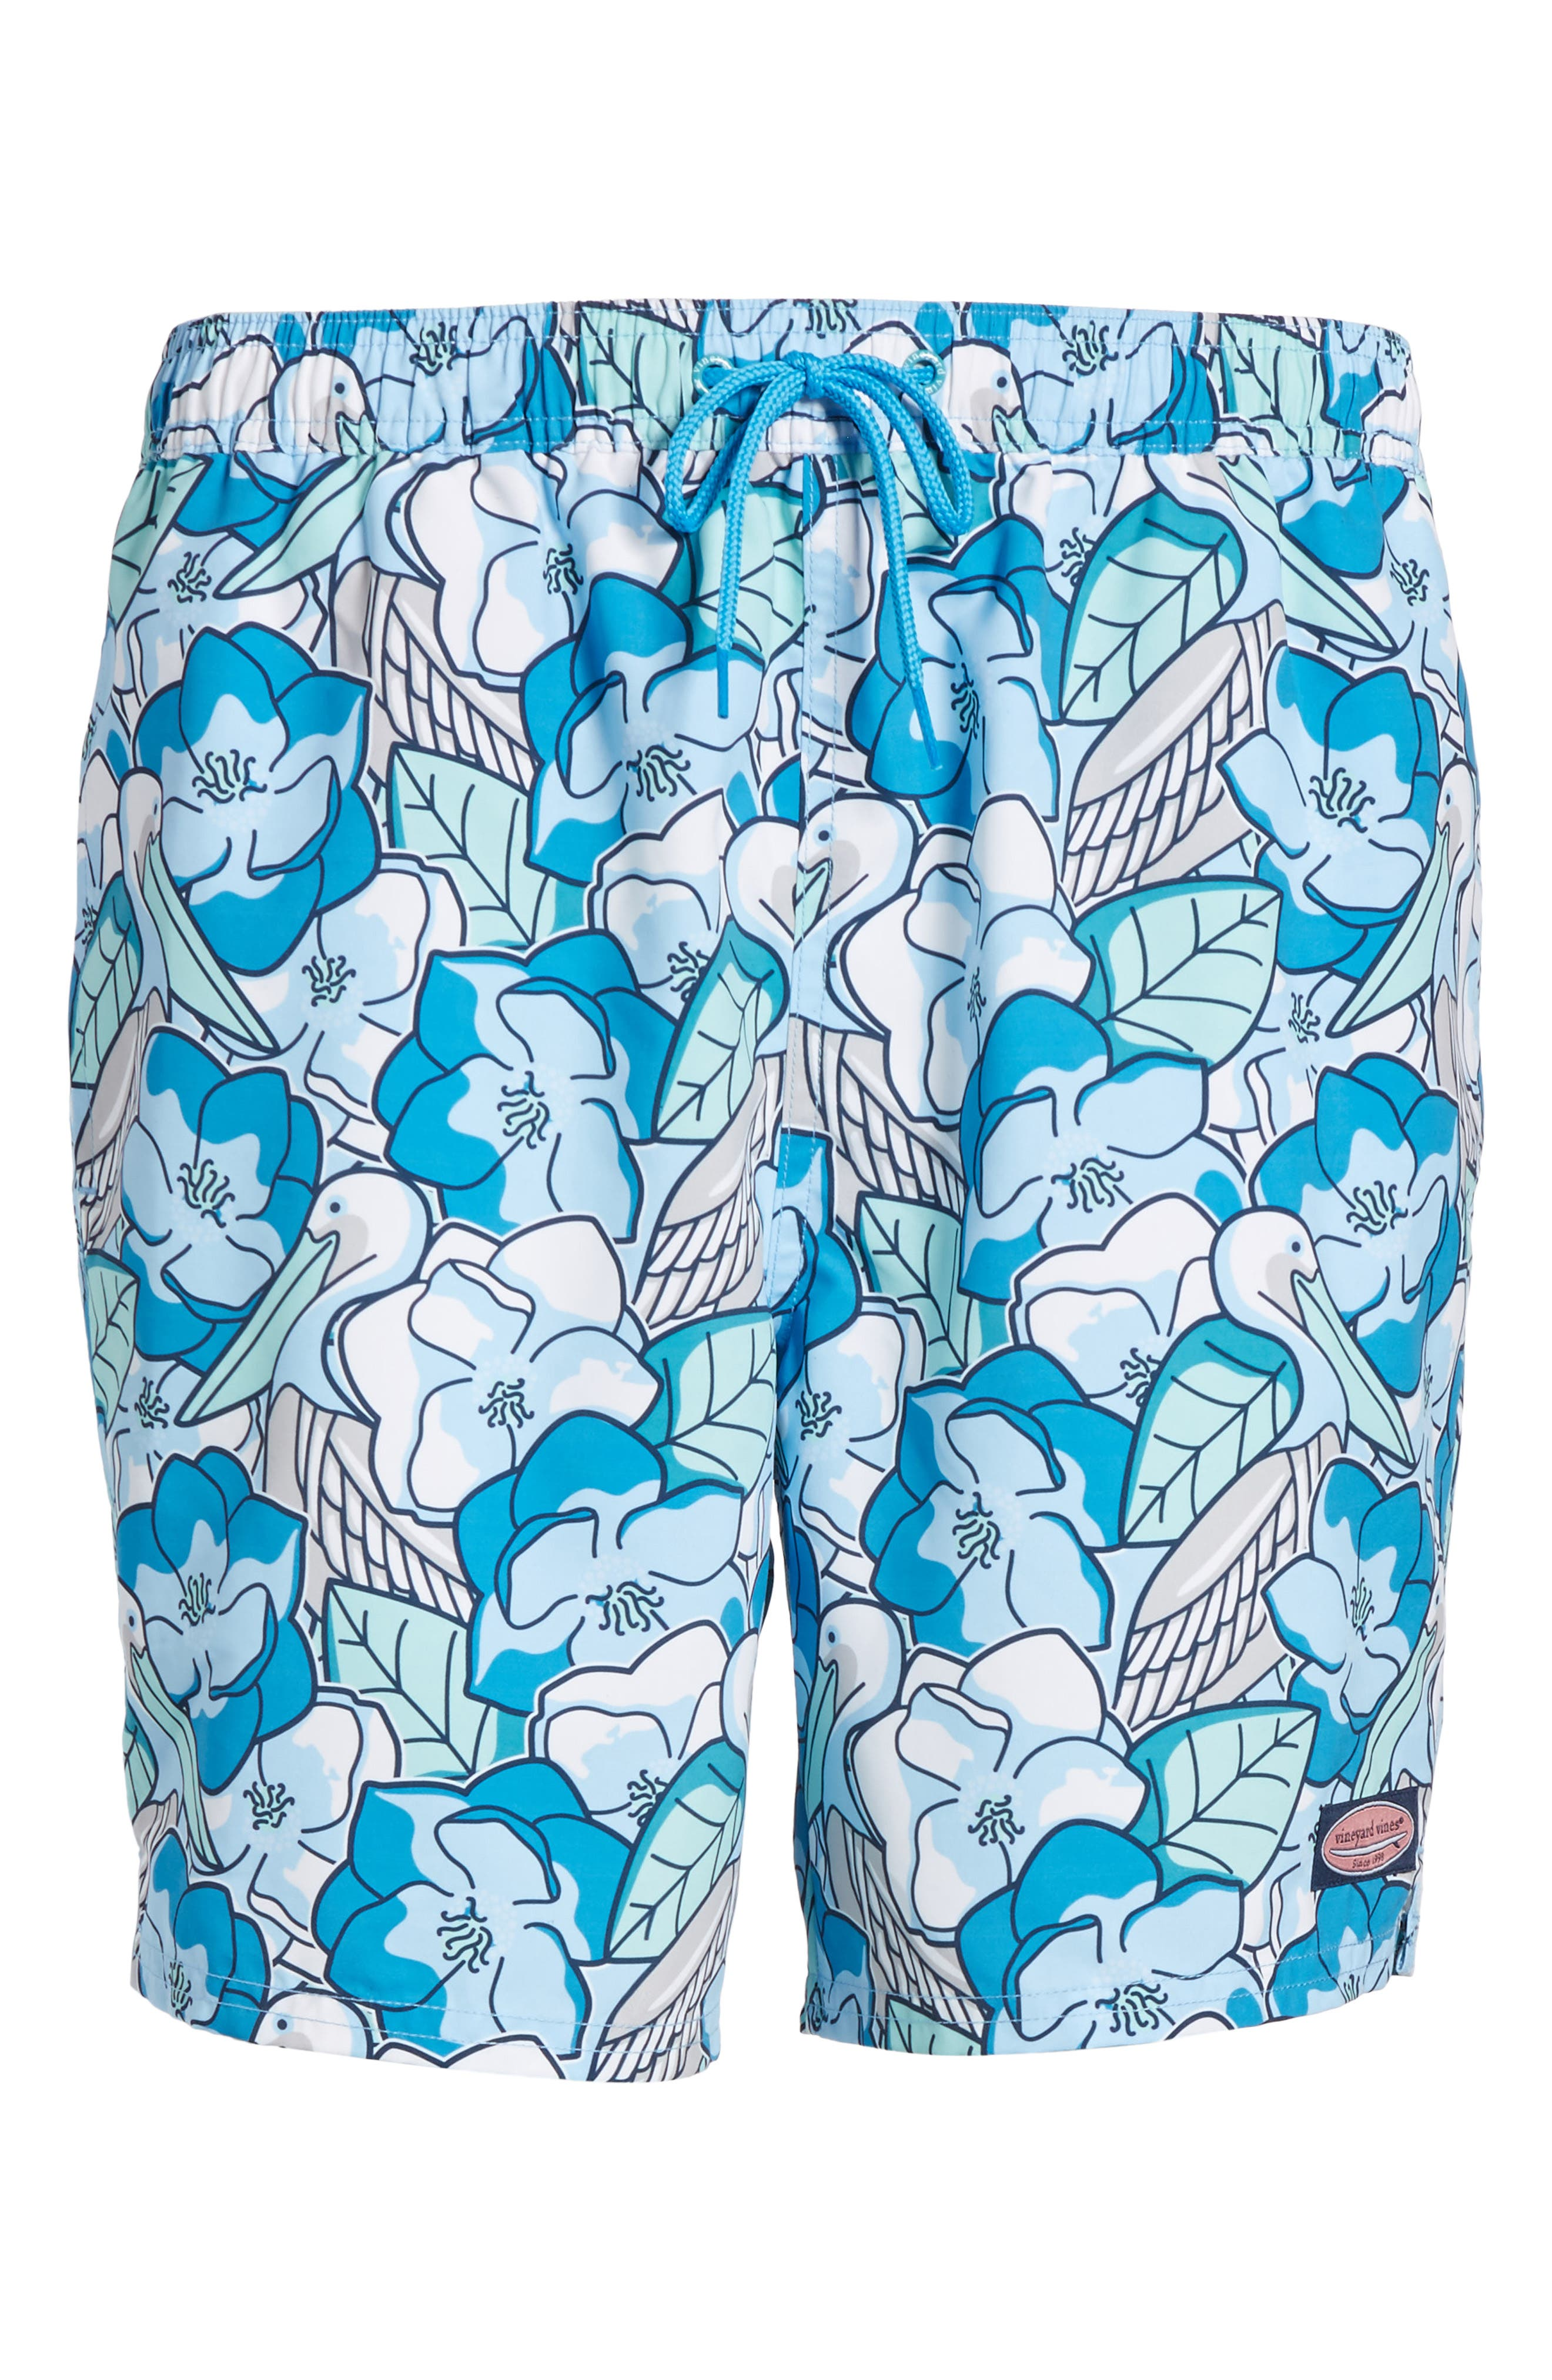 Pelican Magnolias Chappy Swim Trunks,                             Alternate thumbnail 6, color,                             413